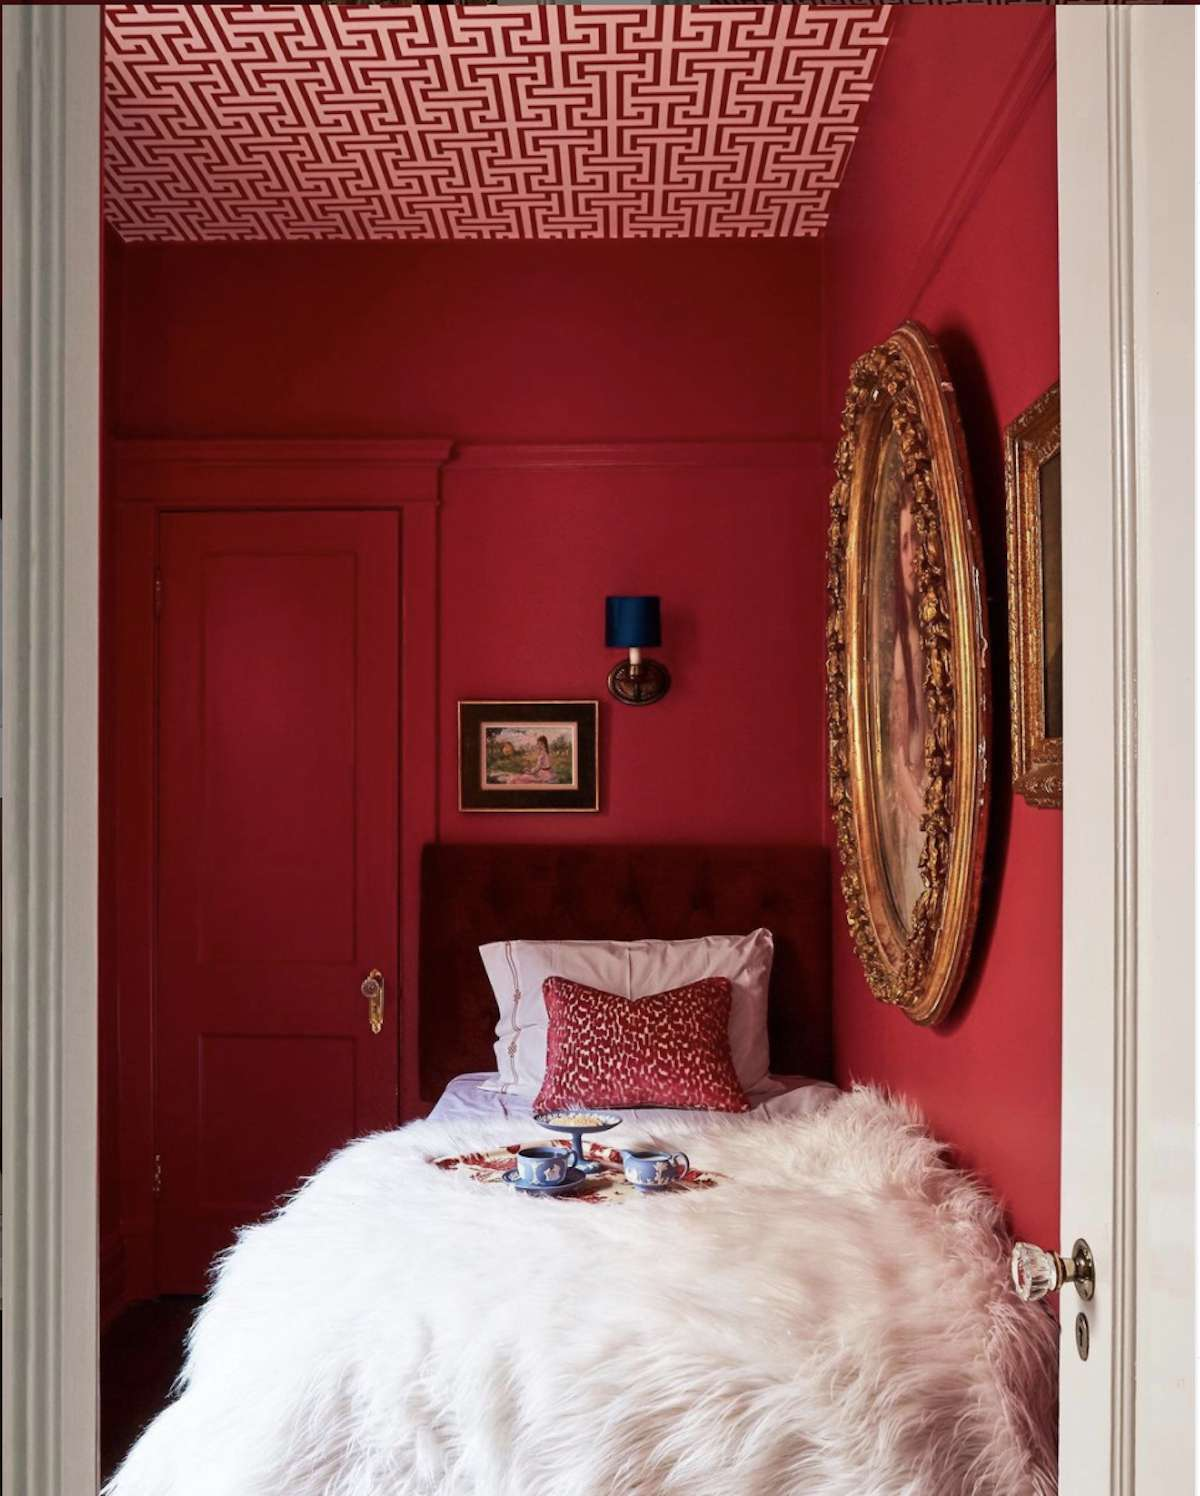 bedroom with red walls, red and white pattern ceiling, white fluffy blanket